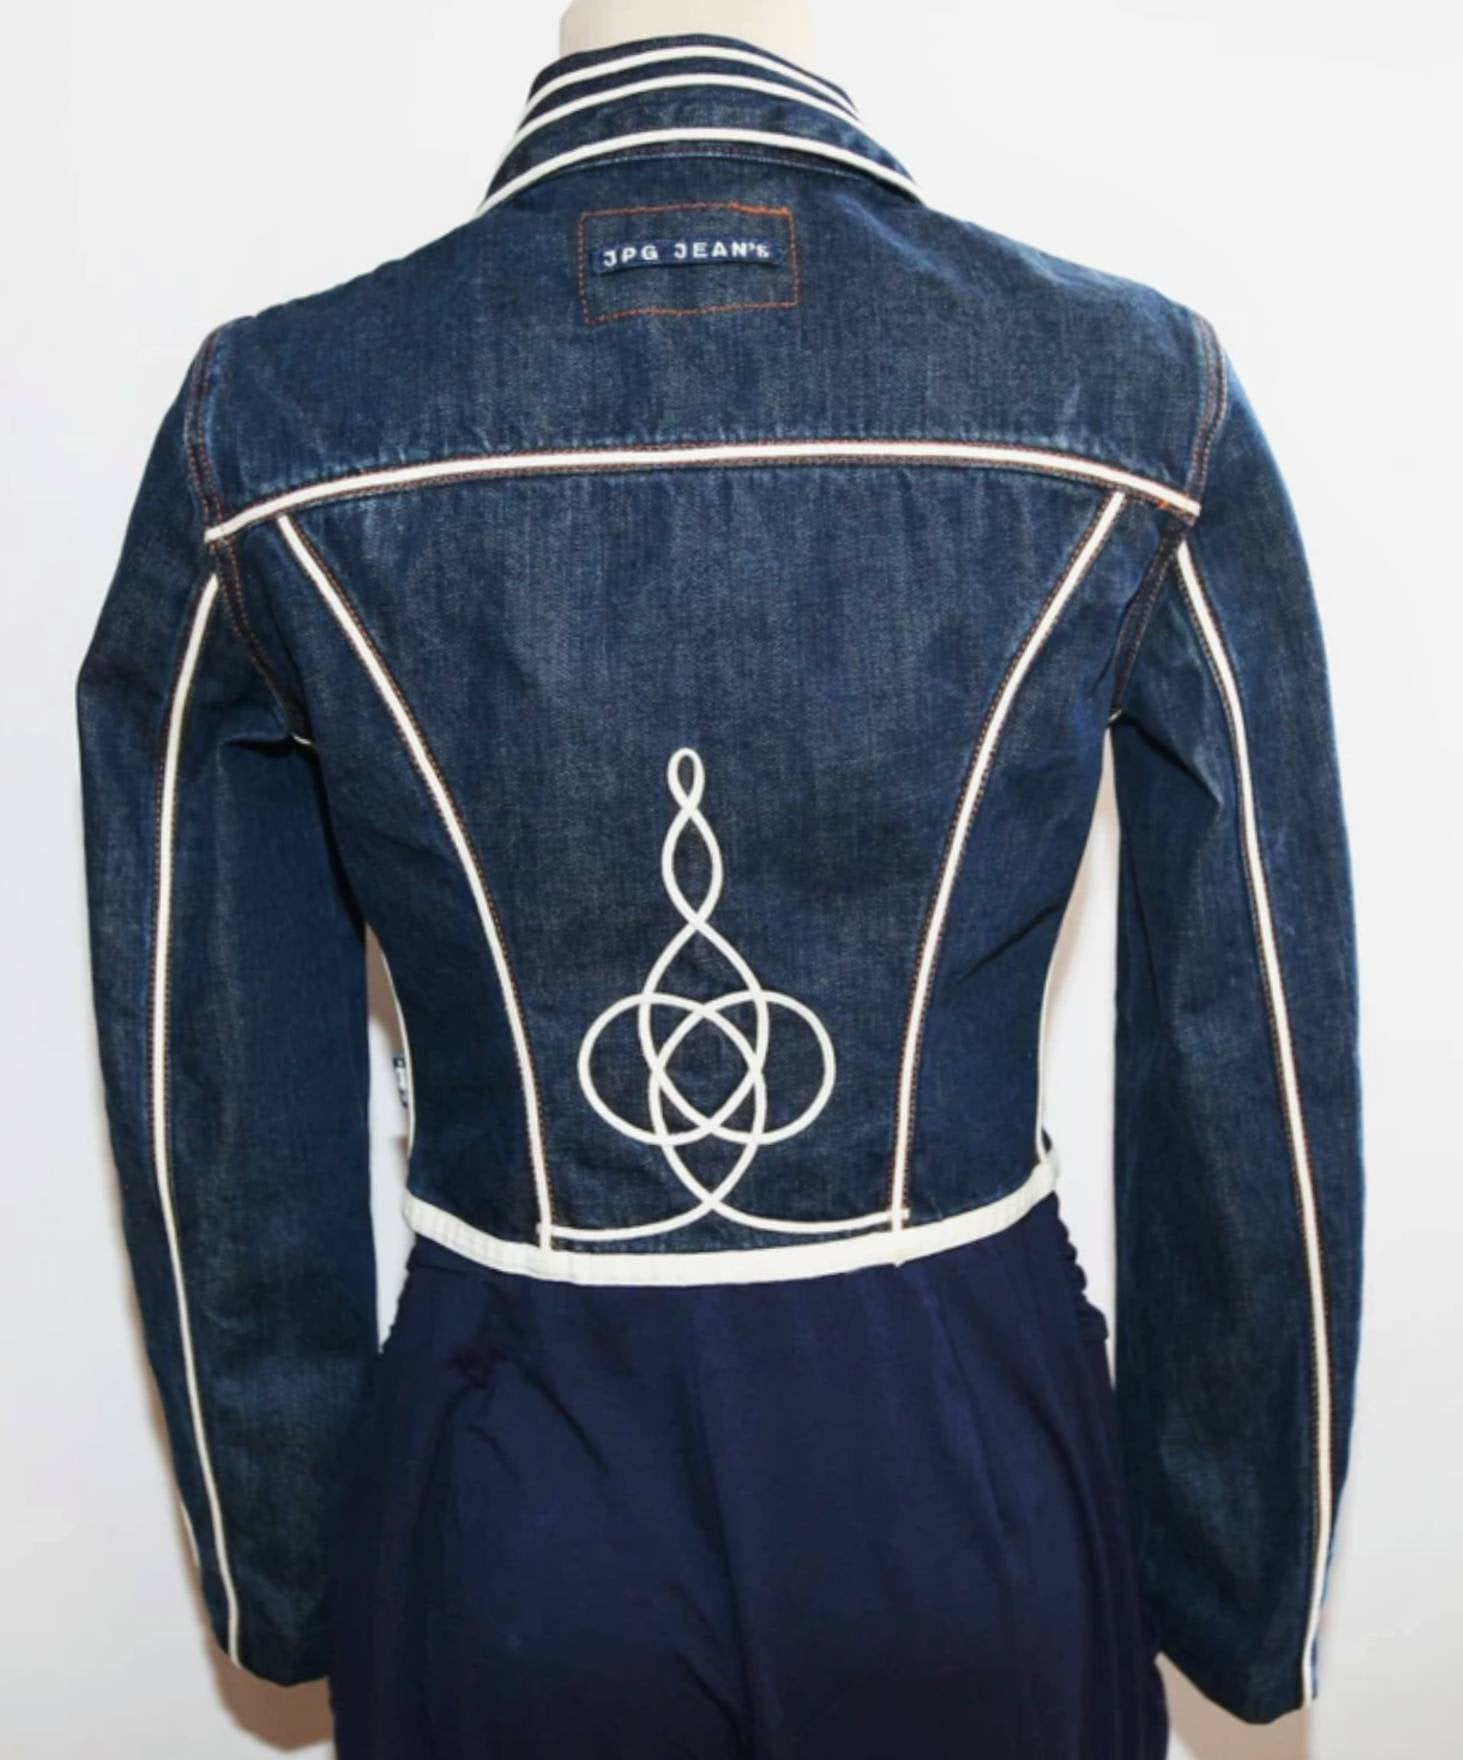 VERY RARE Jean Paul Gaultier Vintage Embroidered Denim Jacket - early 90s